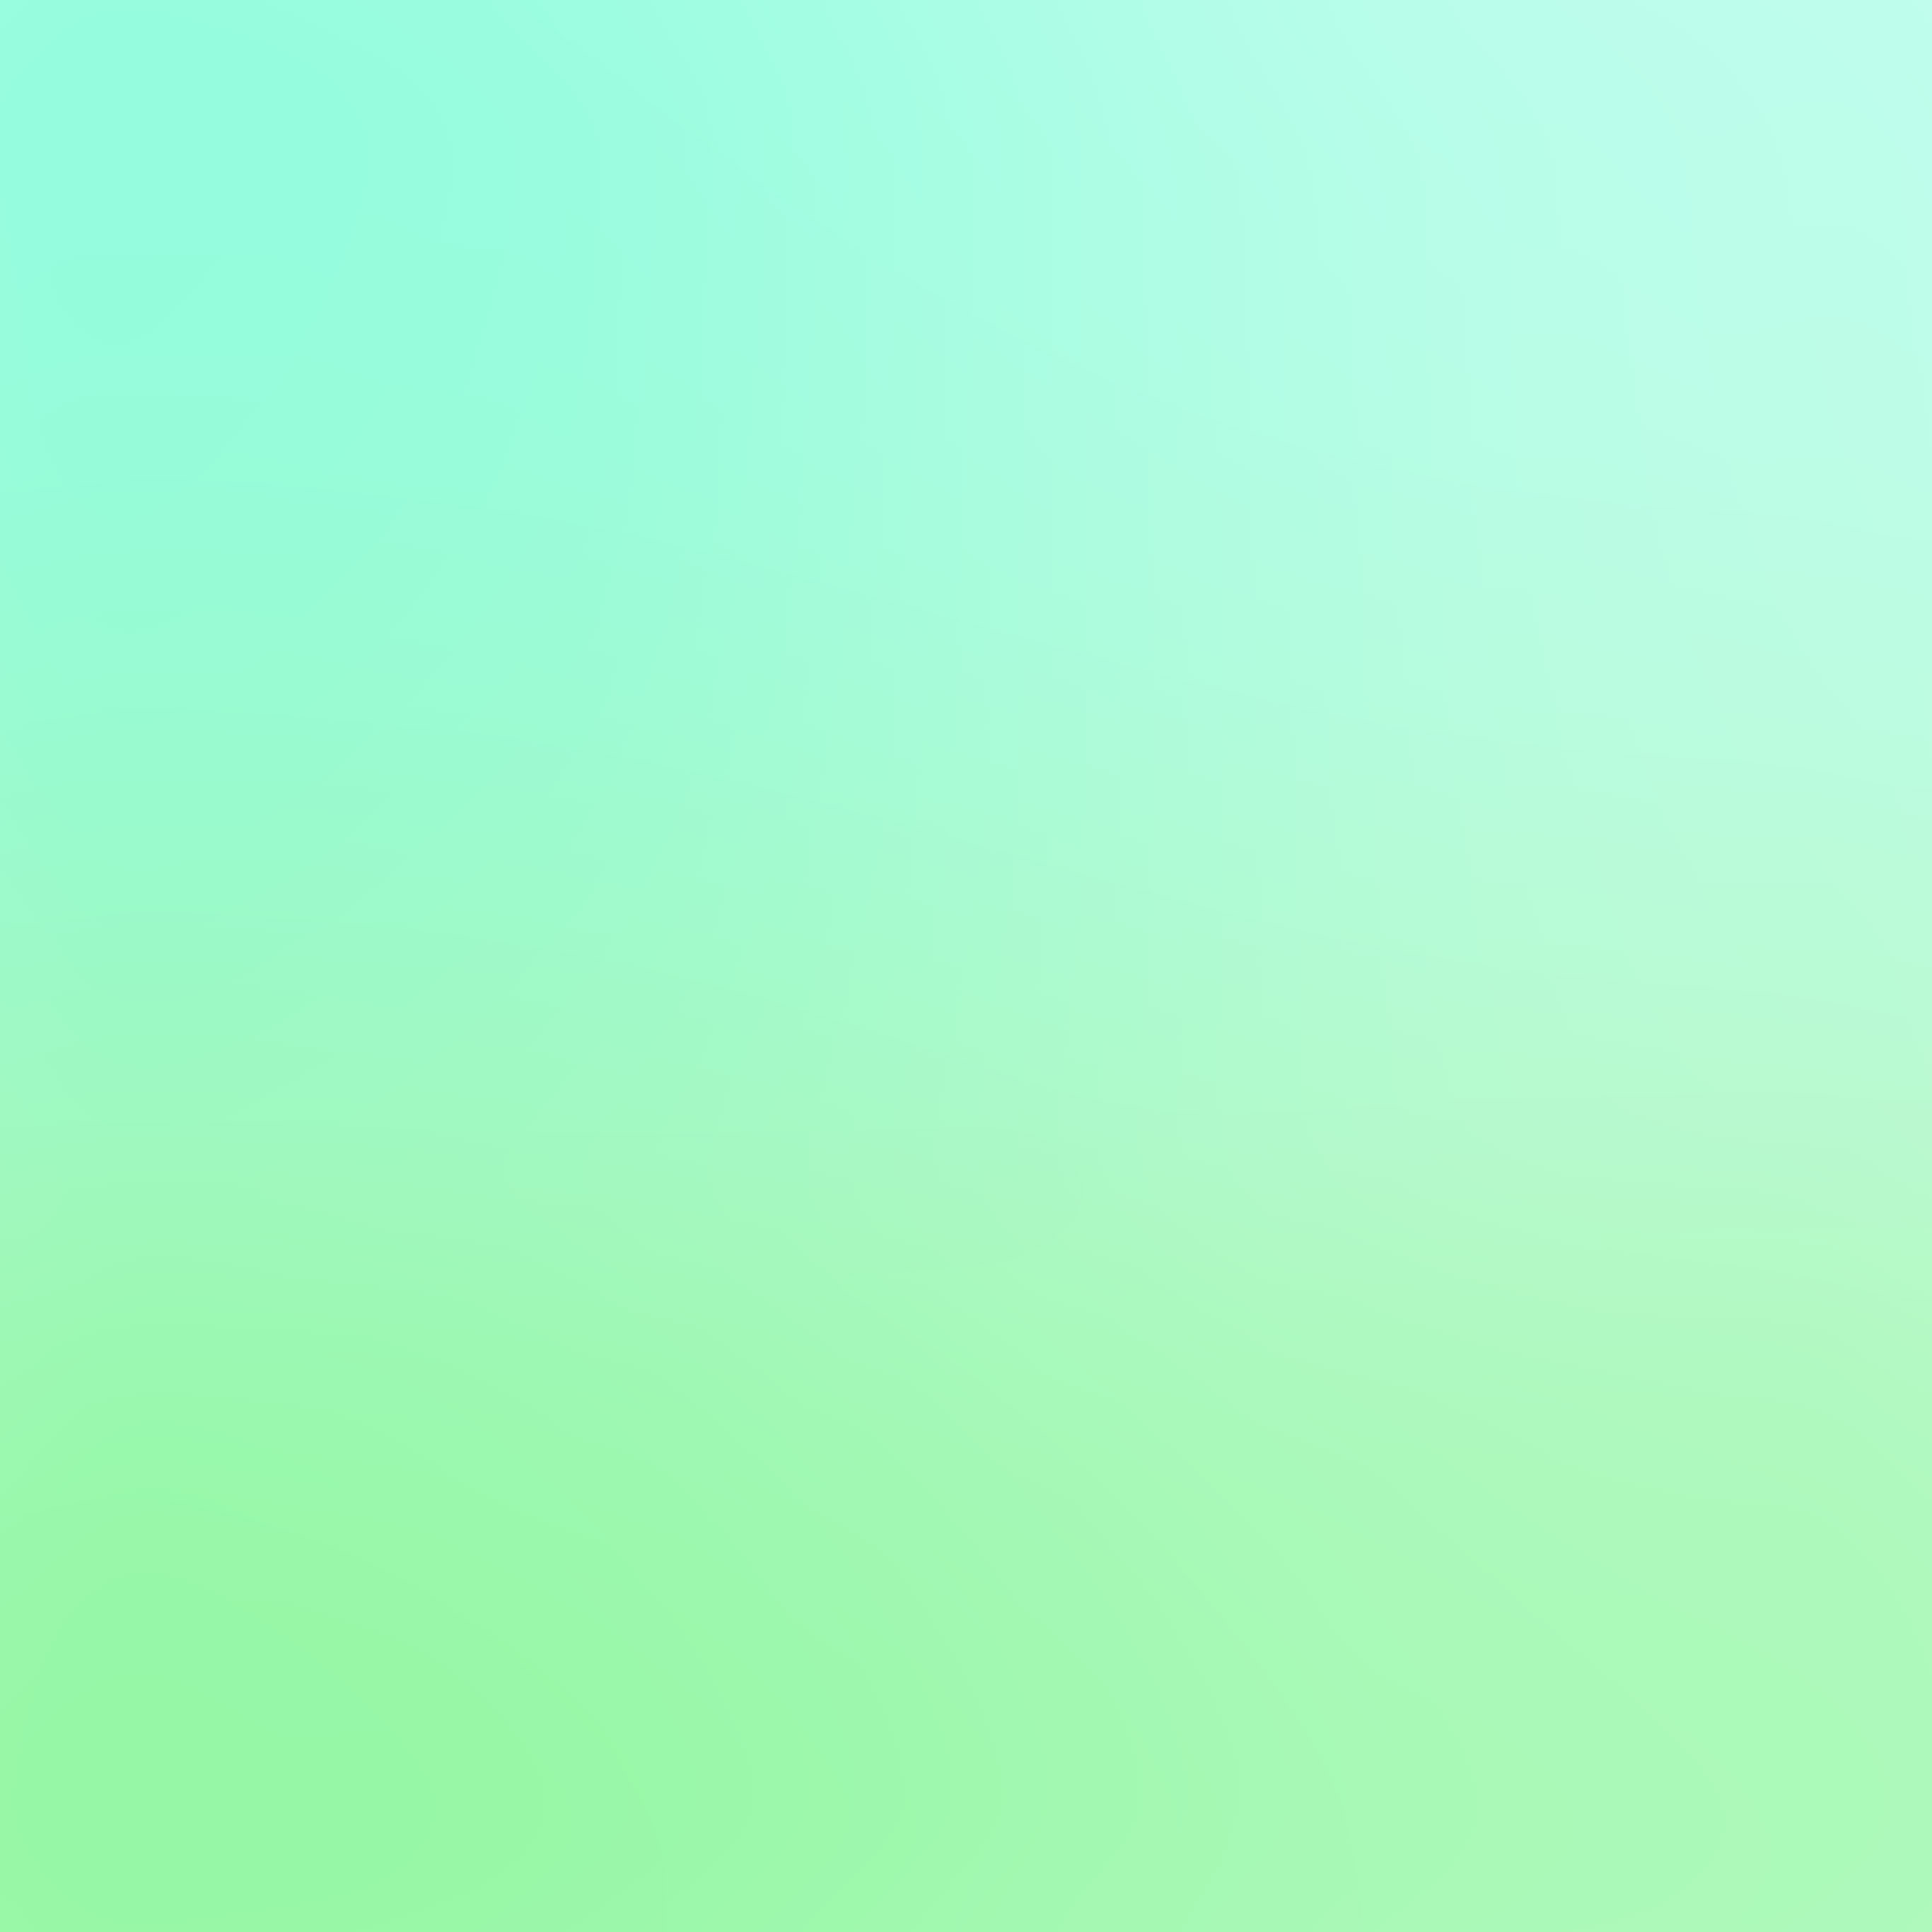 Mint Green Wallpaper Macbook